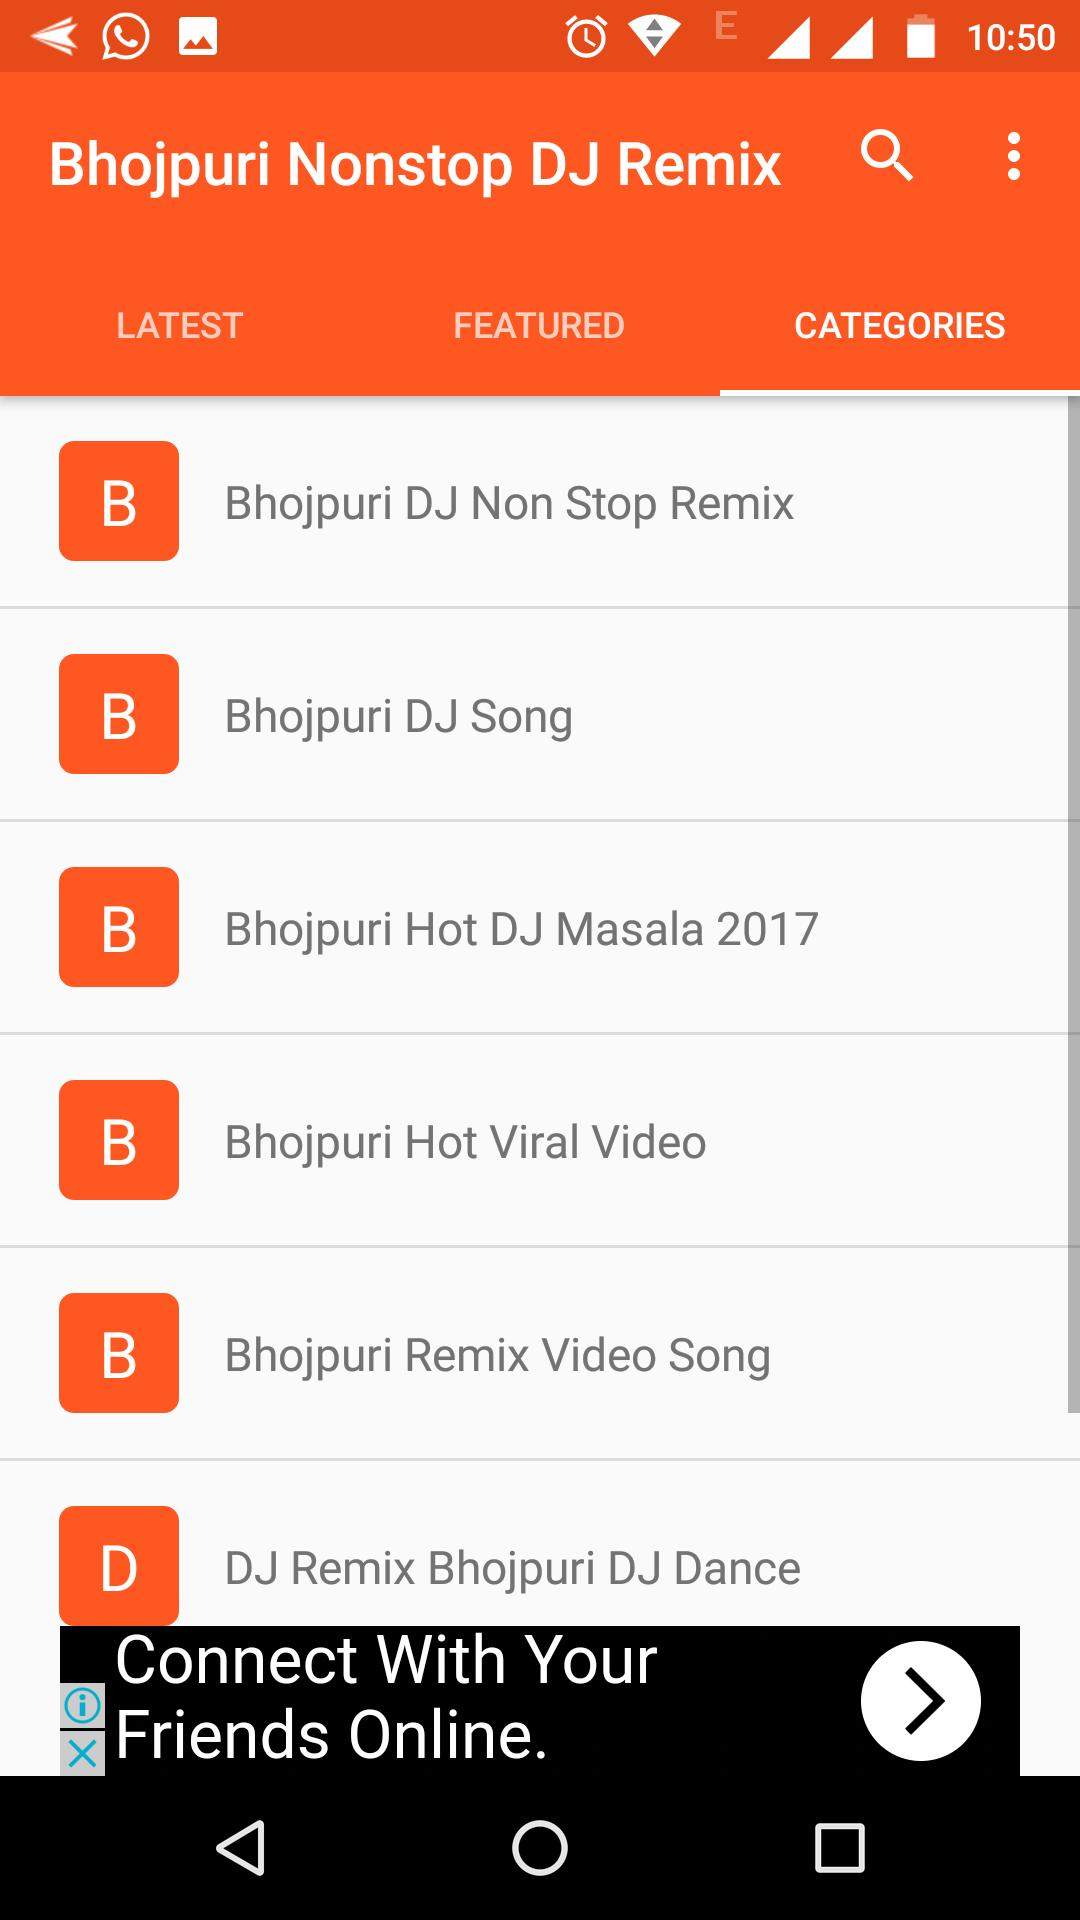 Bhojpuri Nonstop DJ mix - Hot Bhojpuri Video Songs for Android - APK